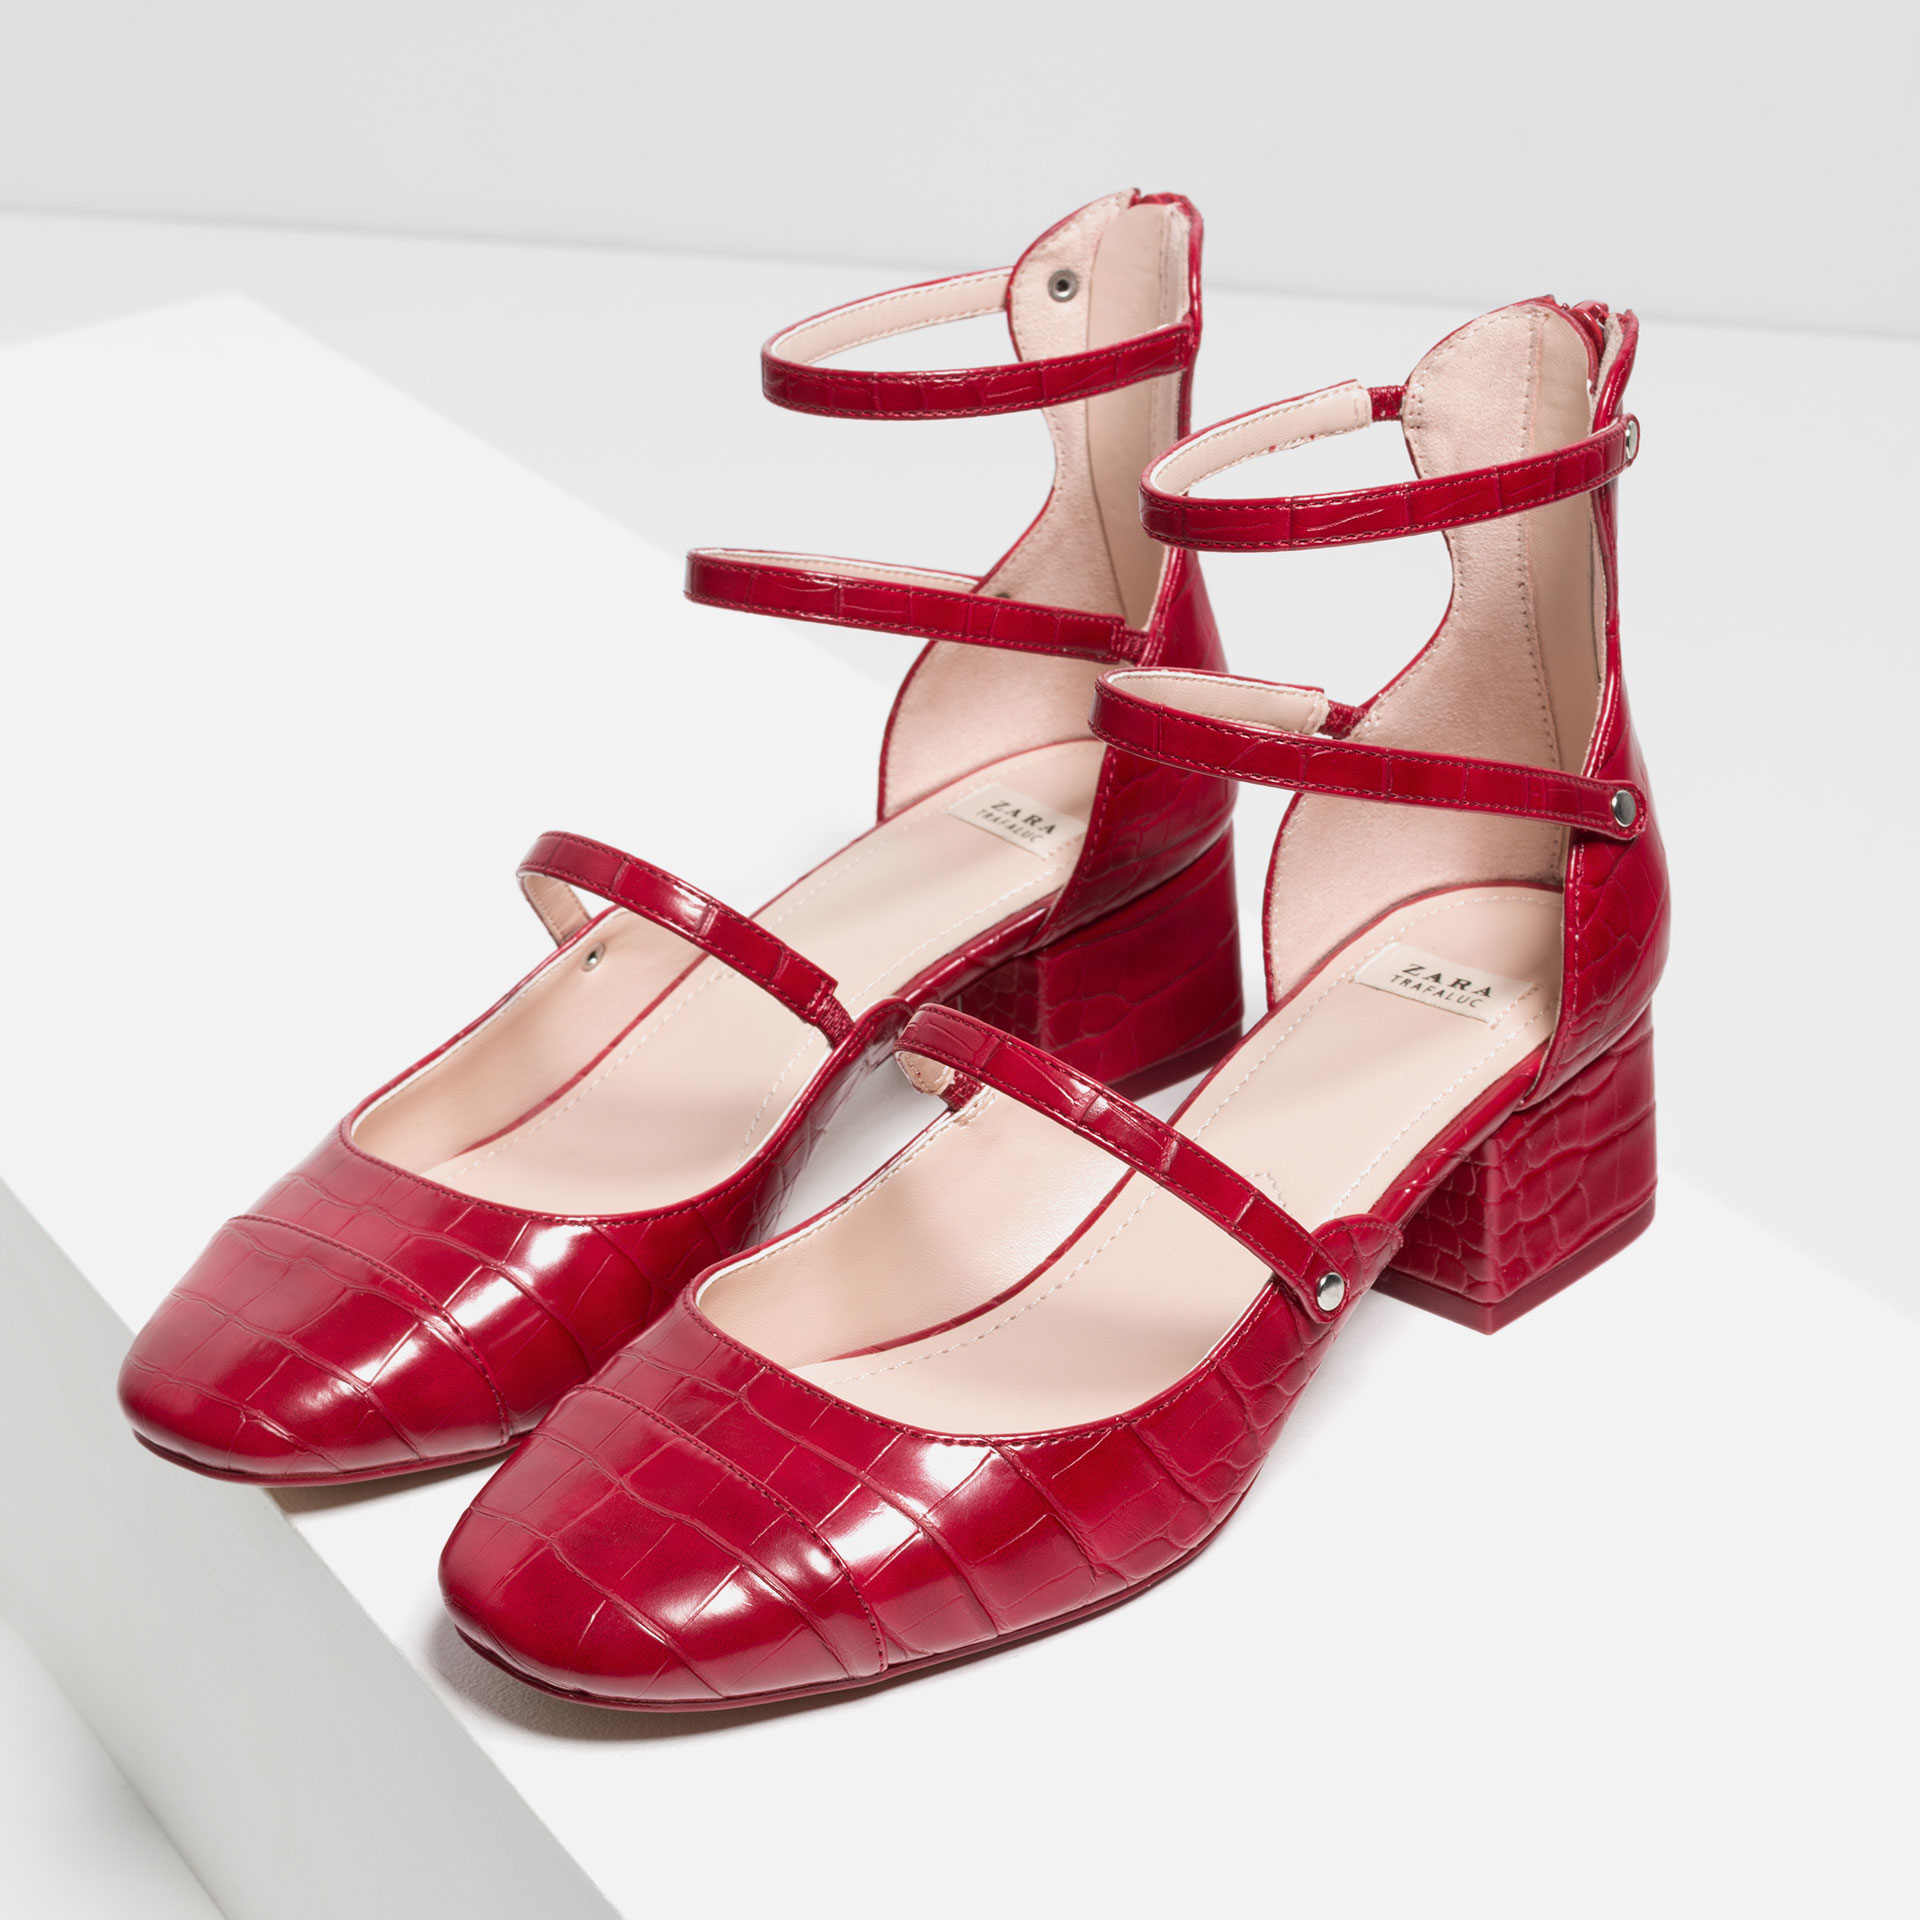 Zara Mid Heel Shoes With Straps in Red | Lyst